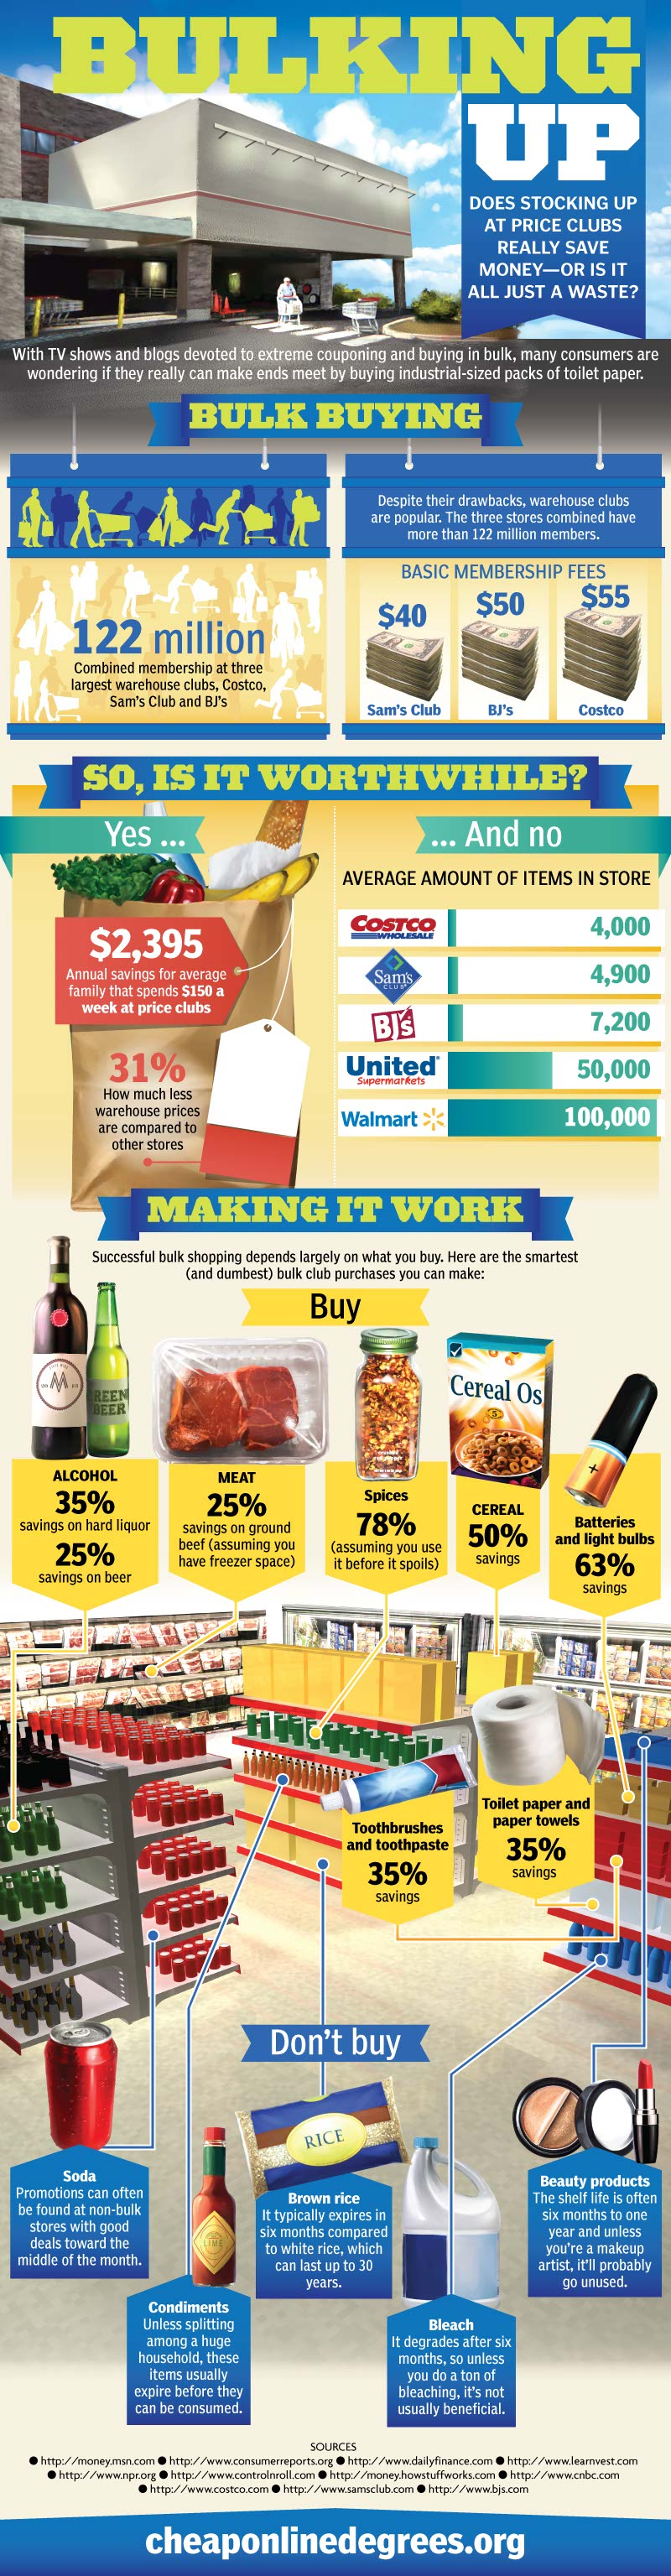 Bulk Shopping Tips-Infographic